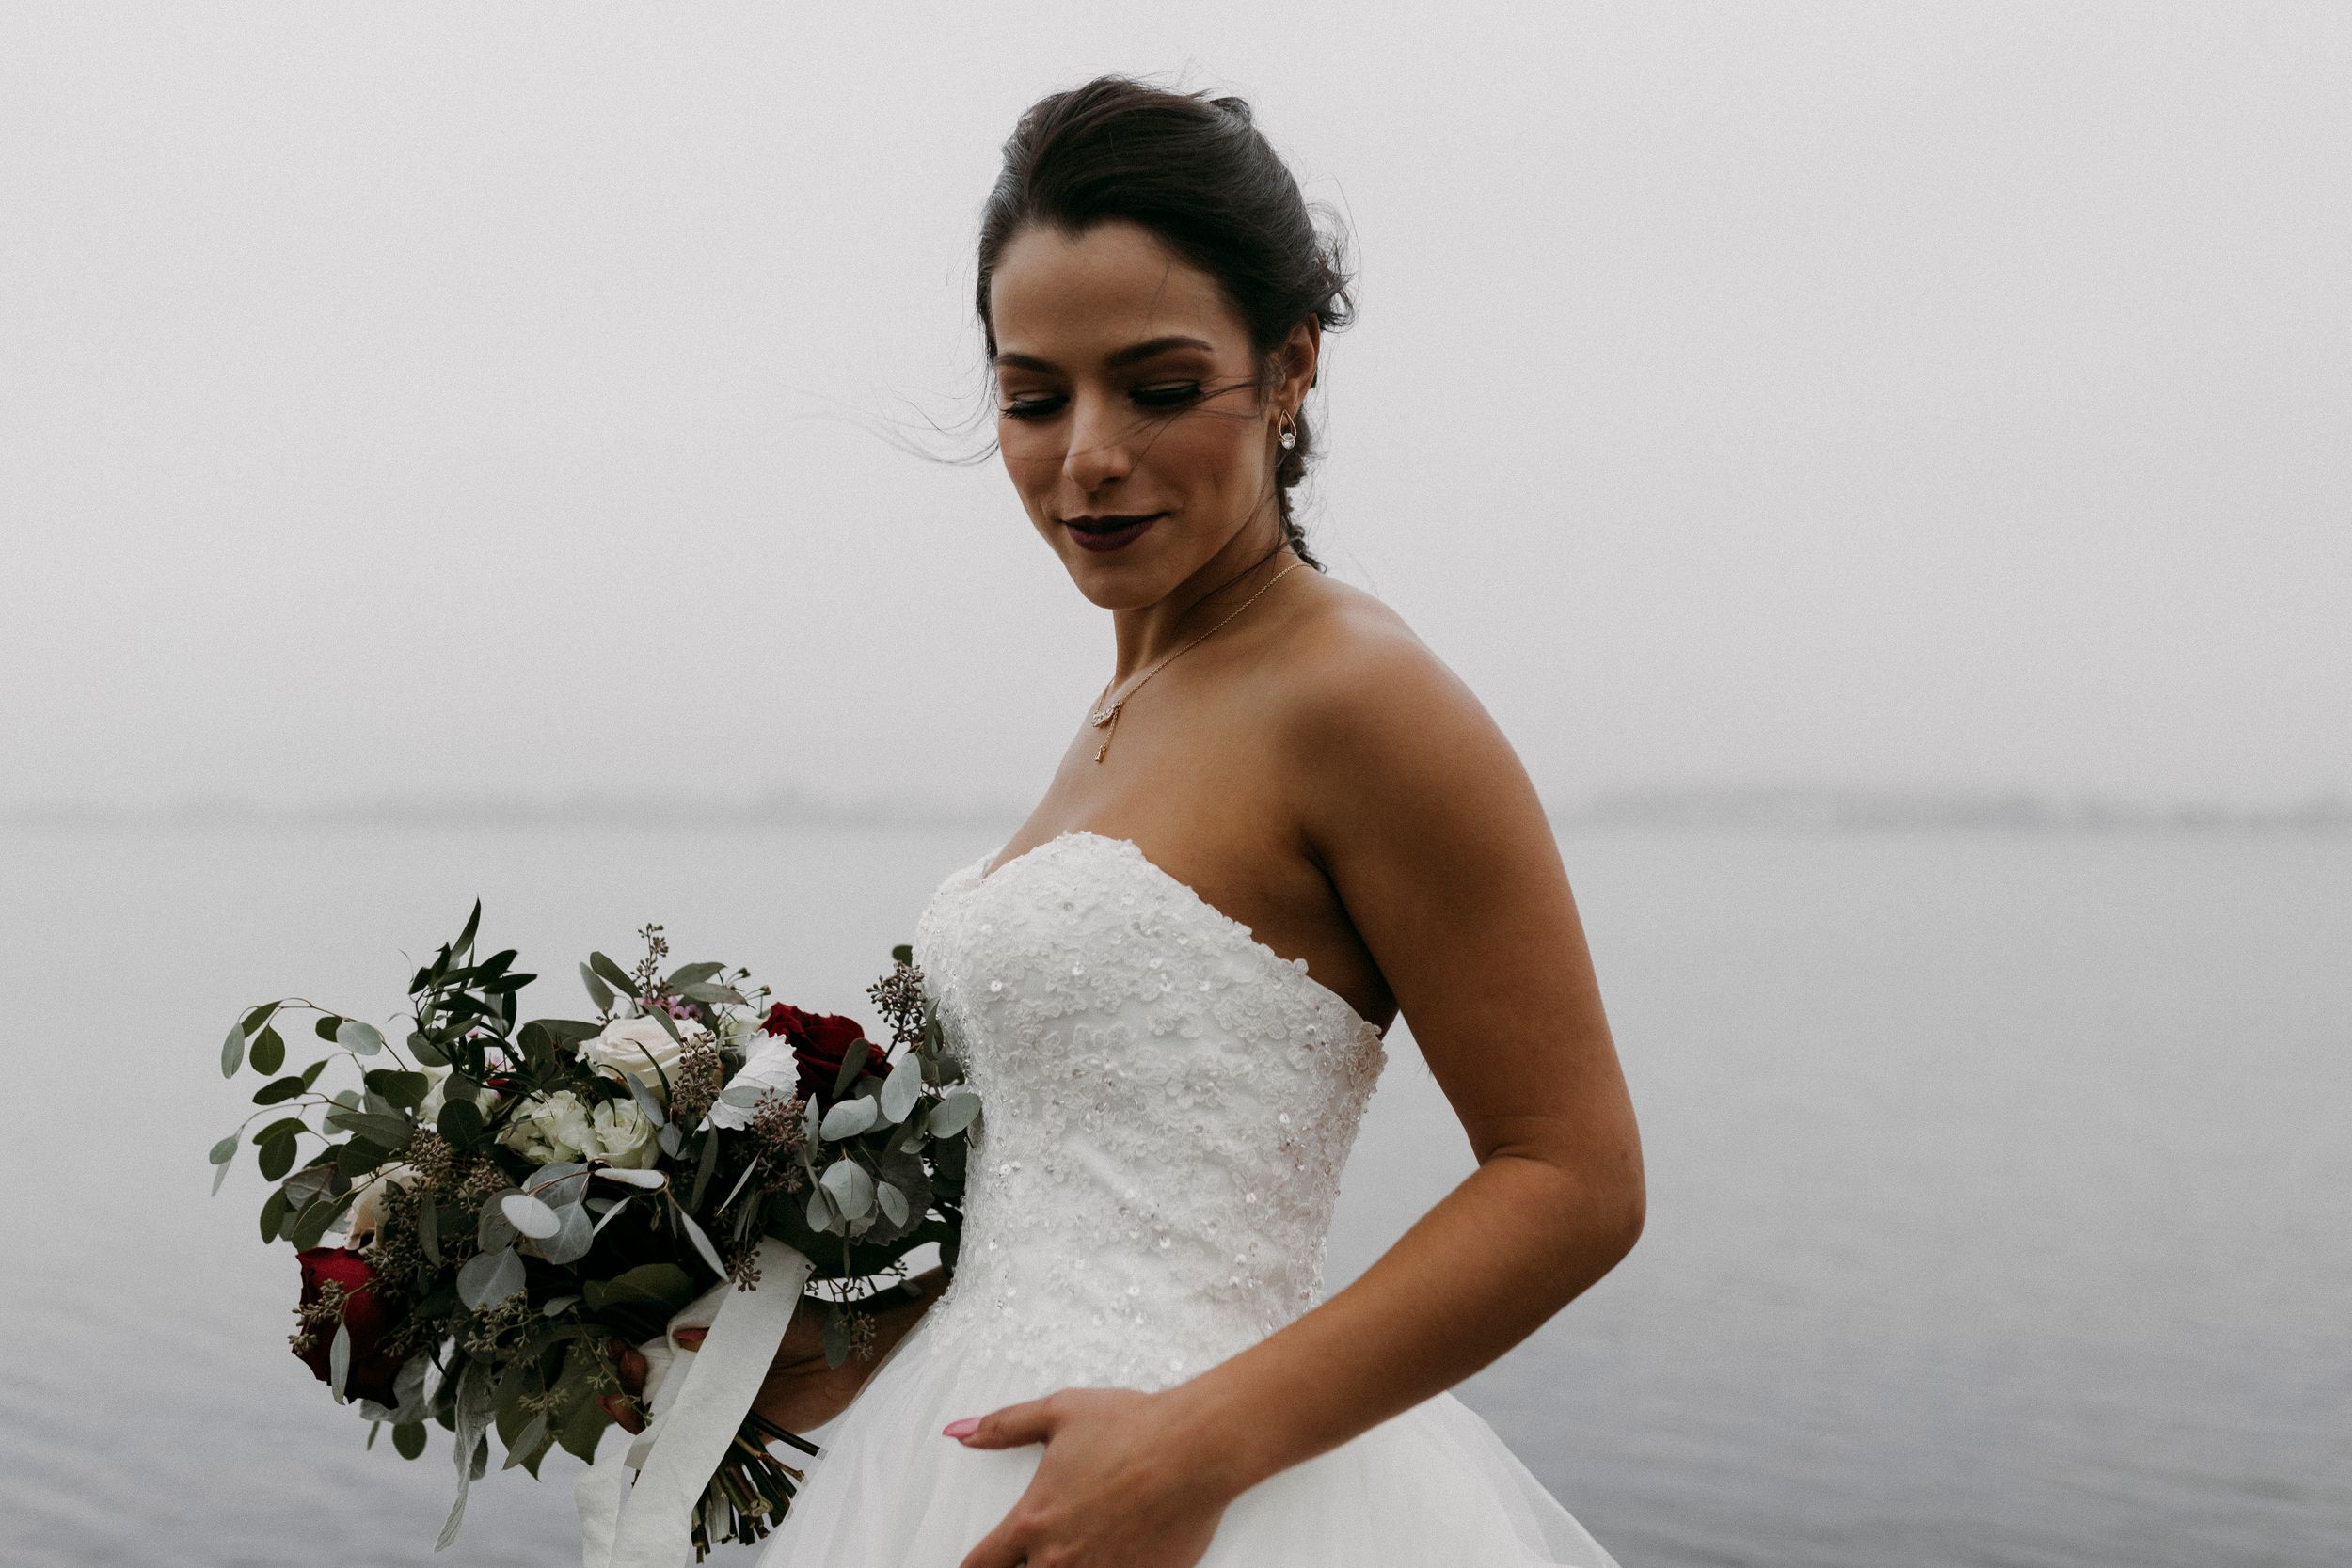 PEI bride in her wedding dress with her bouquet on foggy Victoria Park boardwalk looking down and smiling.